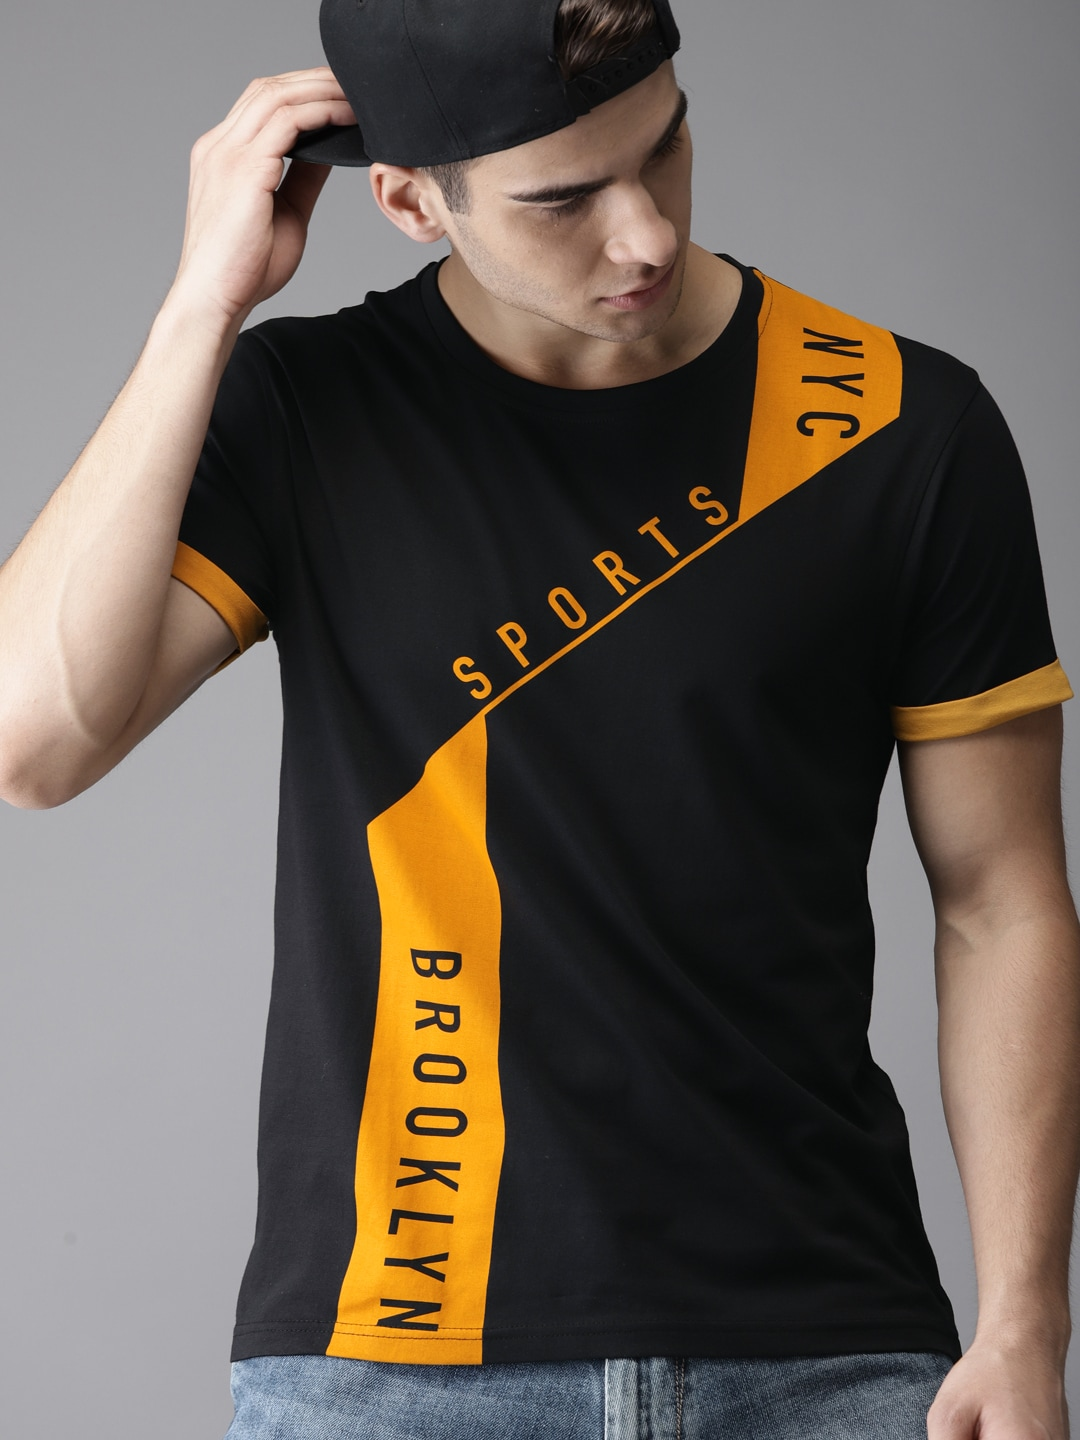 36de25986e01 Men T-shirts - Buy T-shirt for Men Online in India